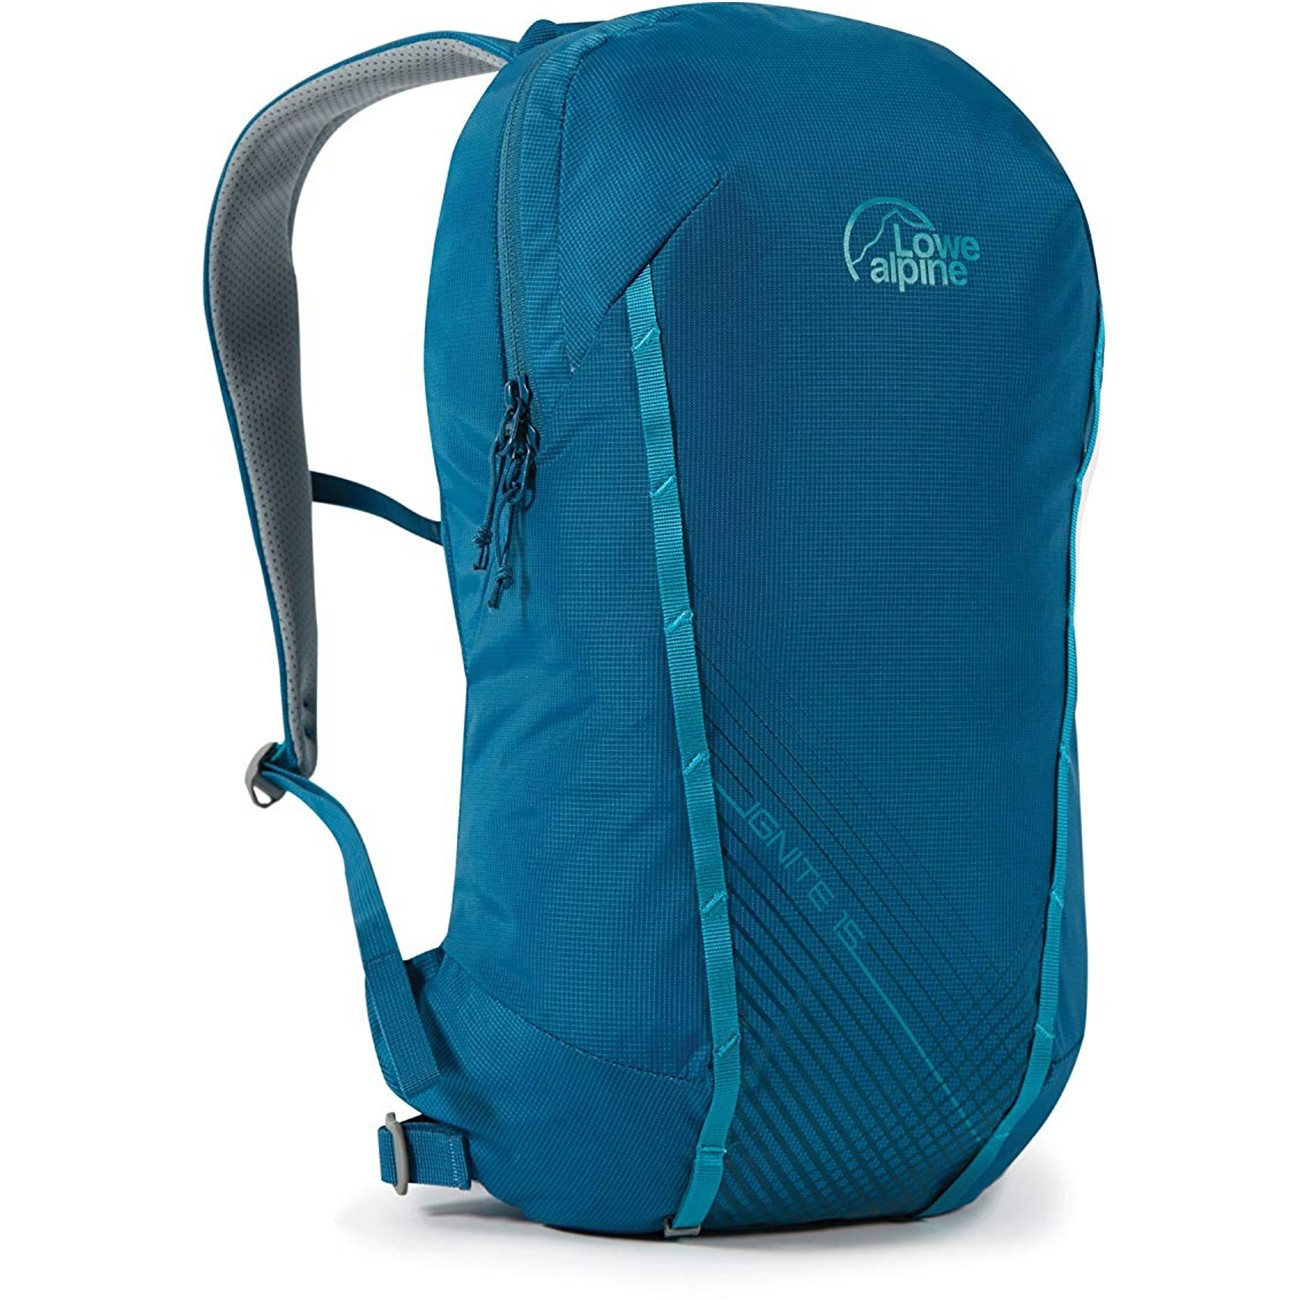 Lowe Alpine Ignite 15 Rucksack - Denim